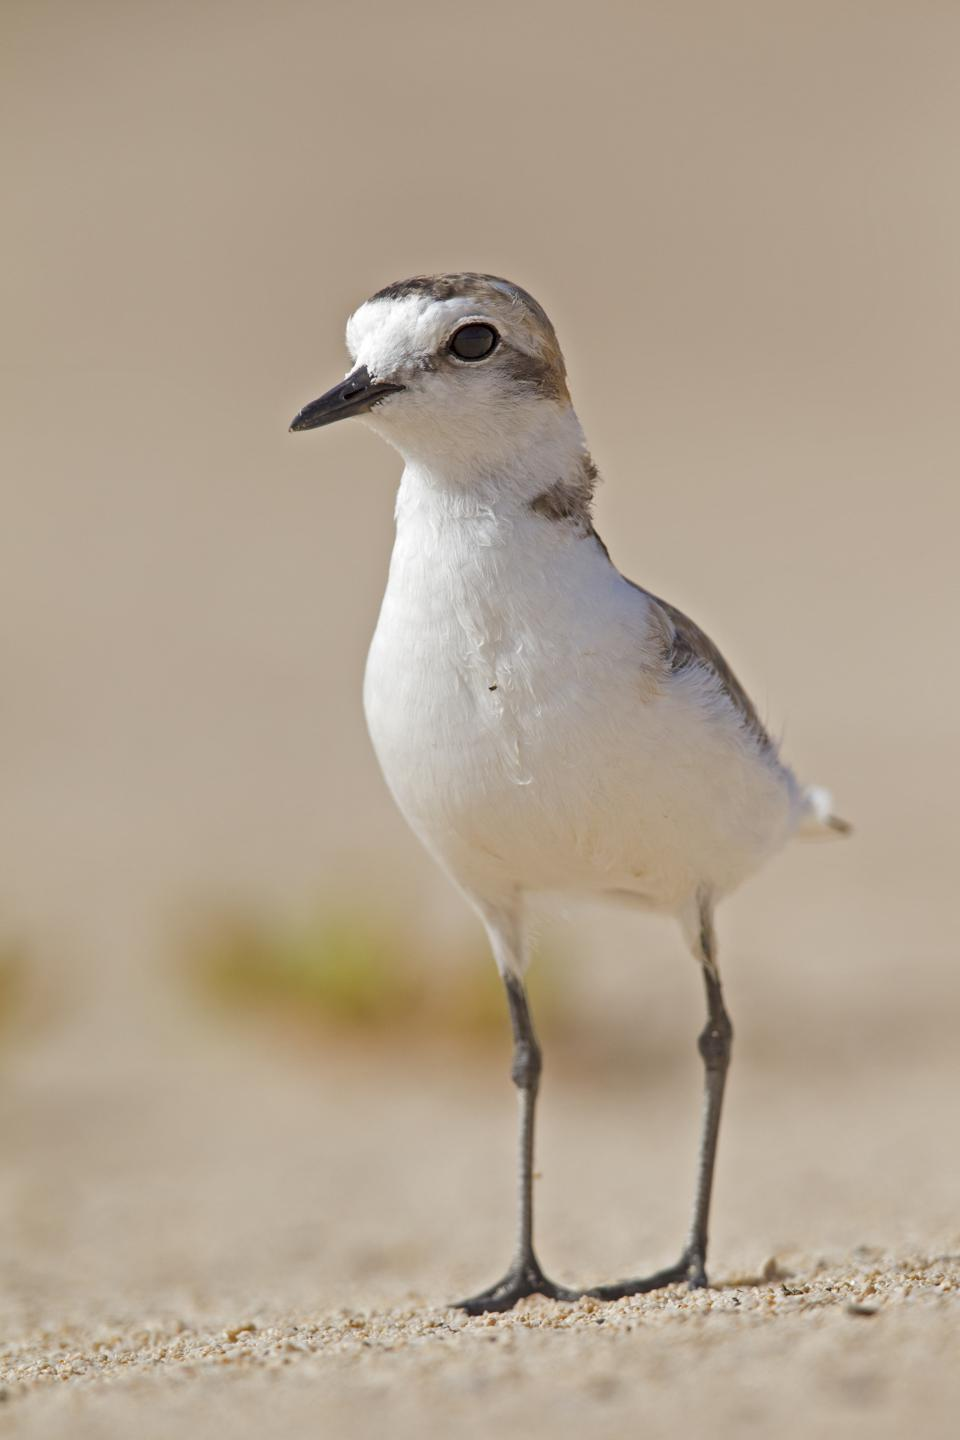 A ketish plover, which may be negatively effected by the bleaching of the beach in Spain.